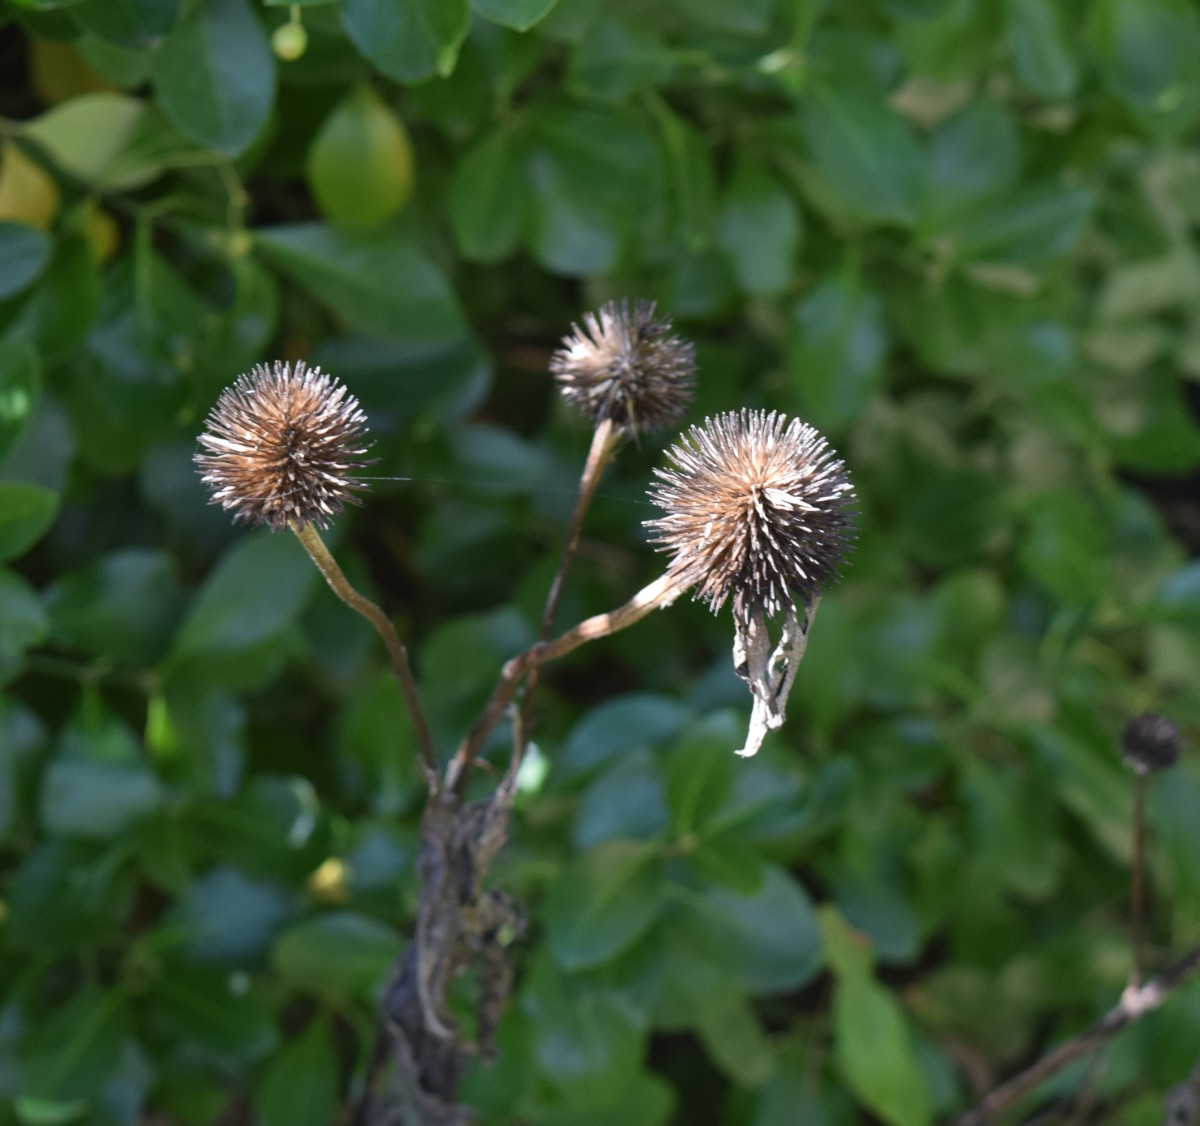 Purple Coneflower seed heads ready for birds to eat in winter.